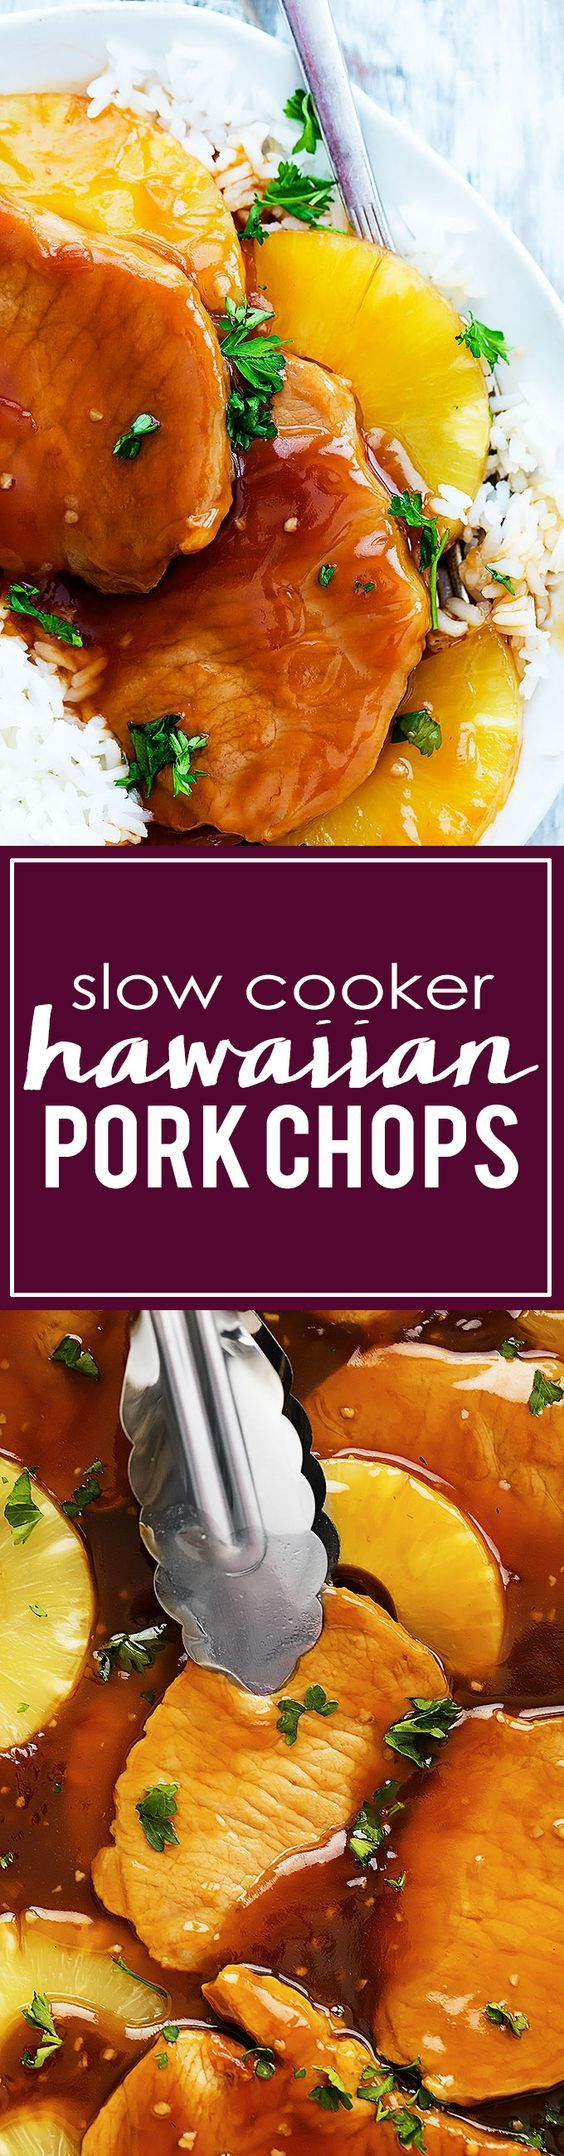 Slow Cooker Hawaiian Pork Chops | Creme de la Crumb: